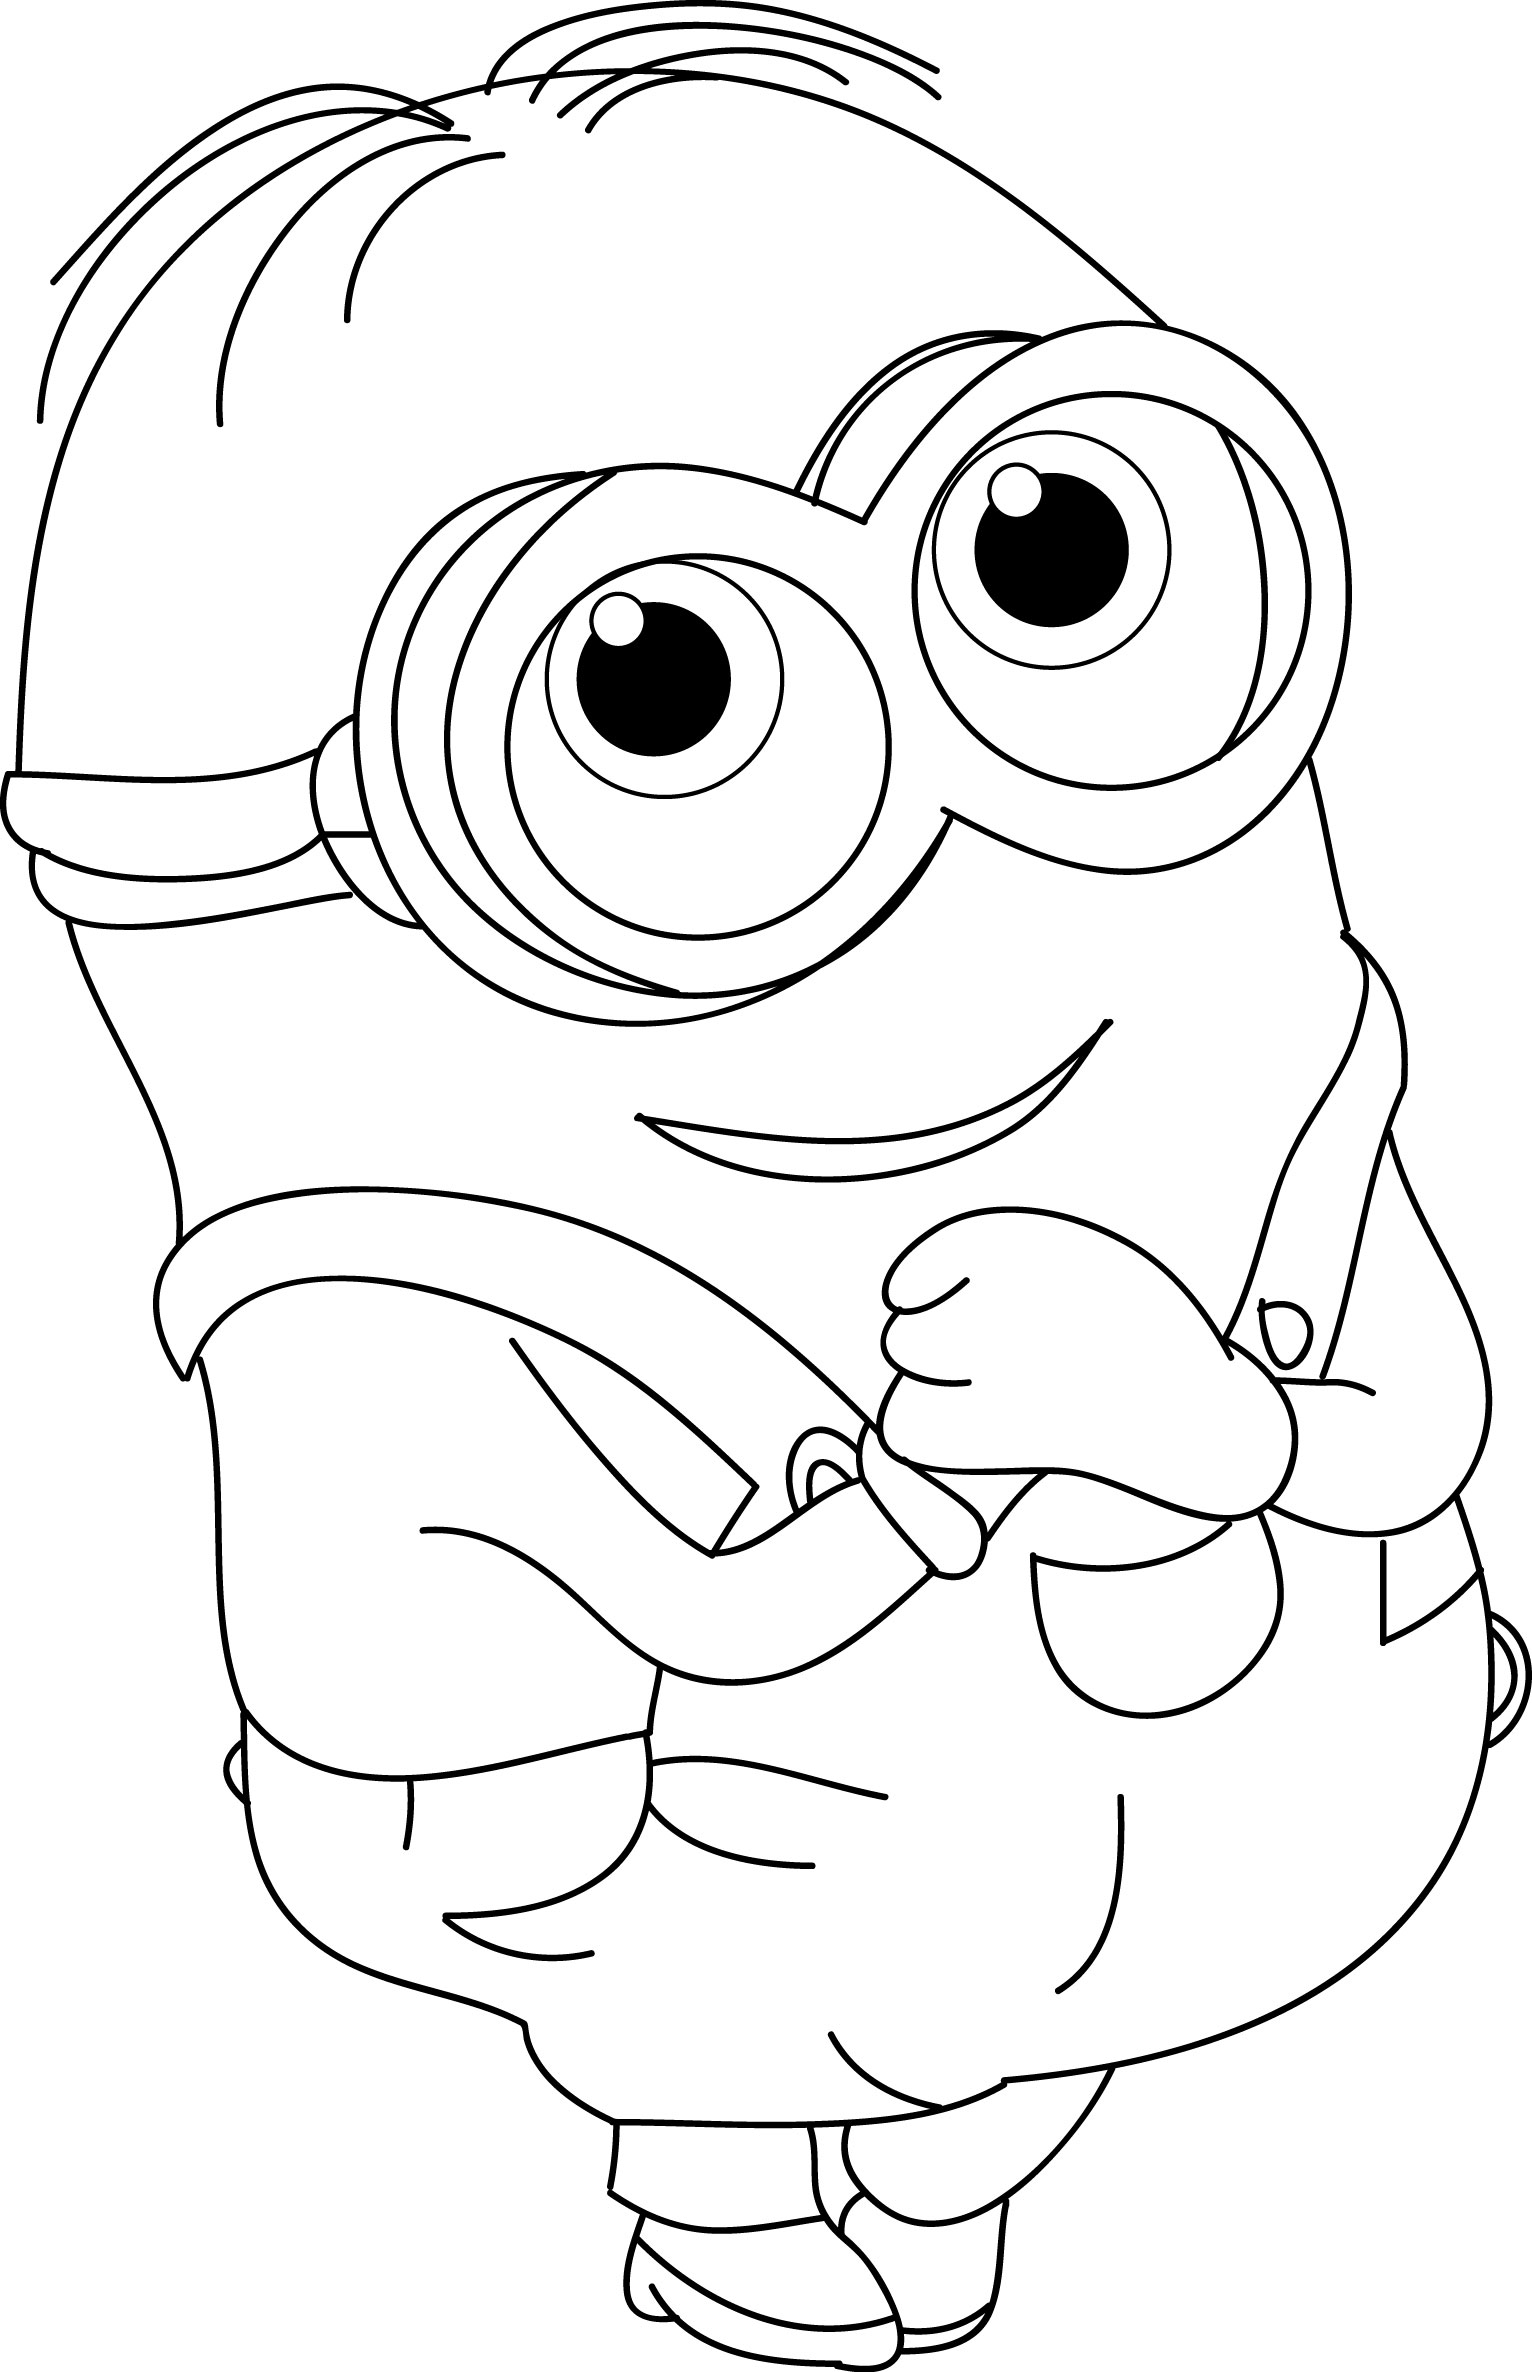 1532x2372 Google Coloring Pages Pokemon Black And White Search